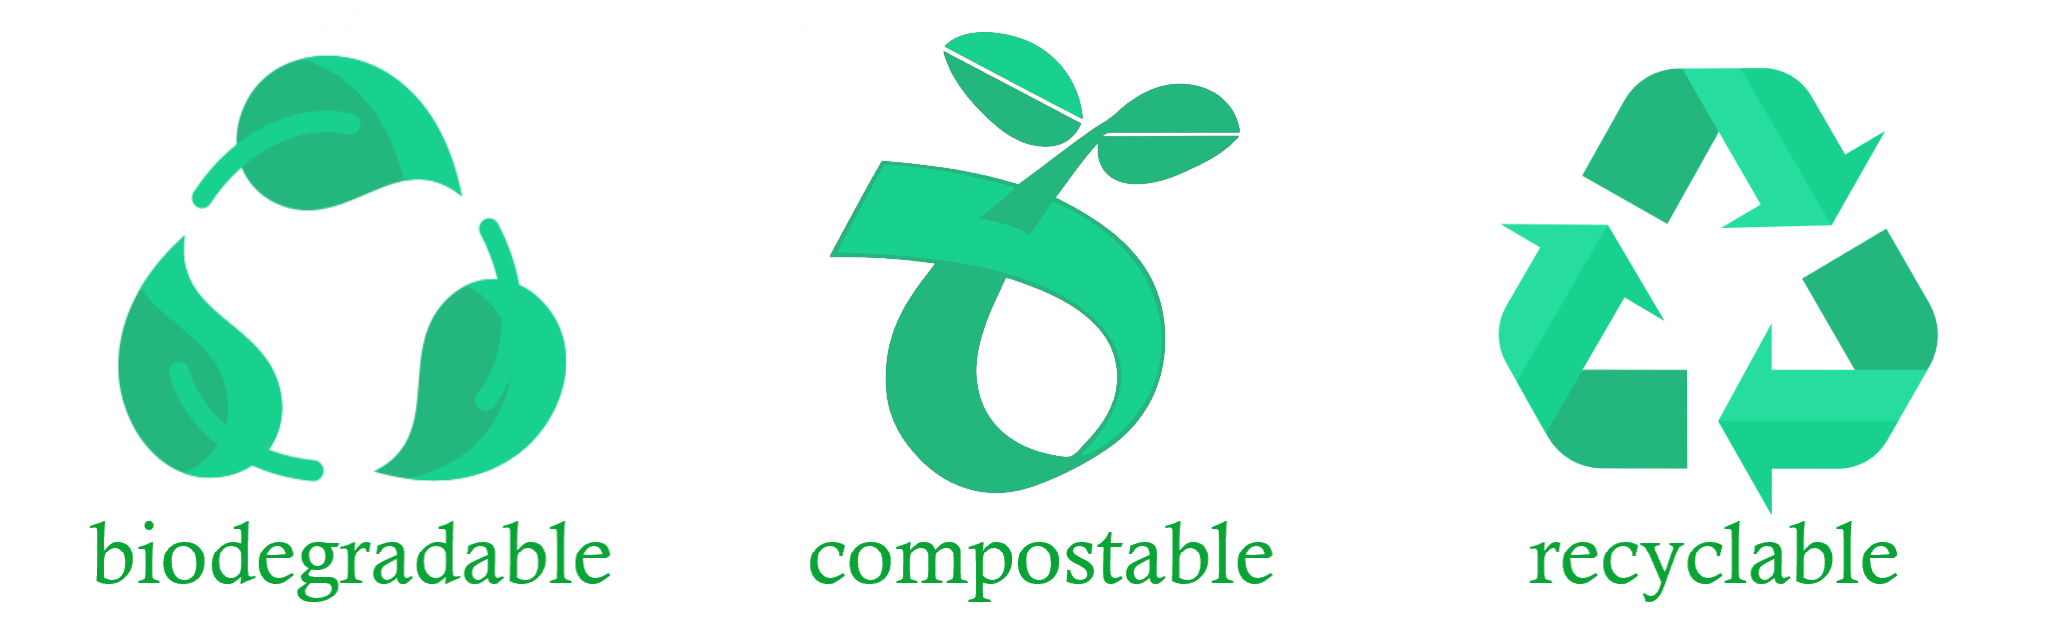 Biodegradable, compostable, recyclable icons in shades of green